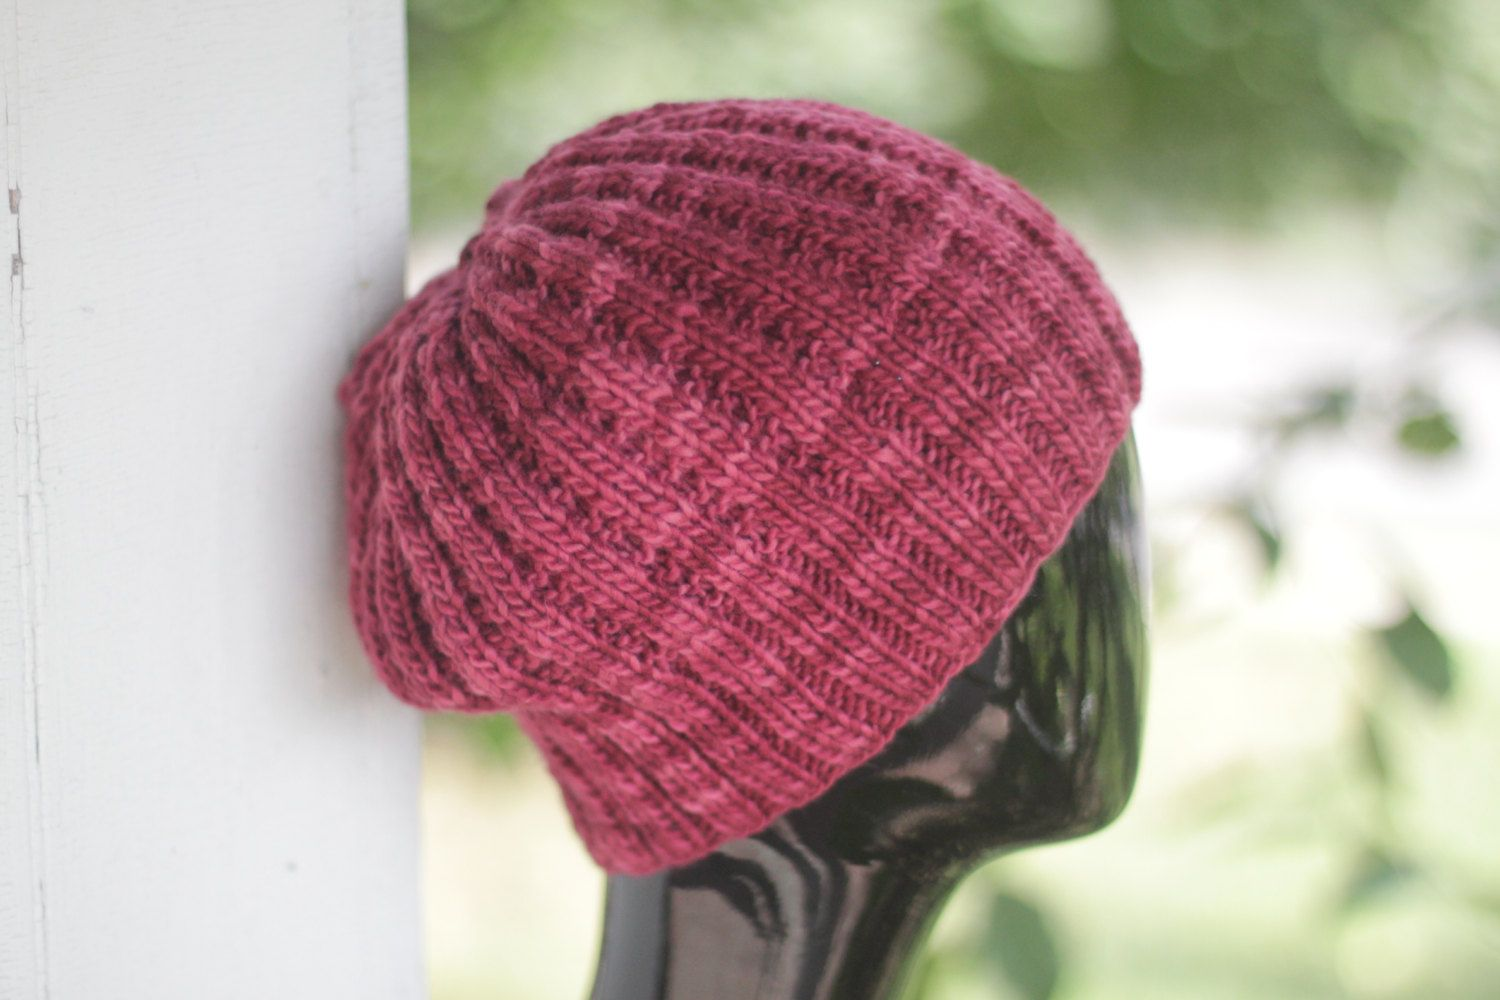 b11a7e211cf9a Cranberry Beanie - Dark Red Ribbed Slouch Hat - Unisex Knit Slouchy Beanie  in Burgundy by bonnyknitsforyou on Etsy